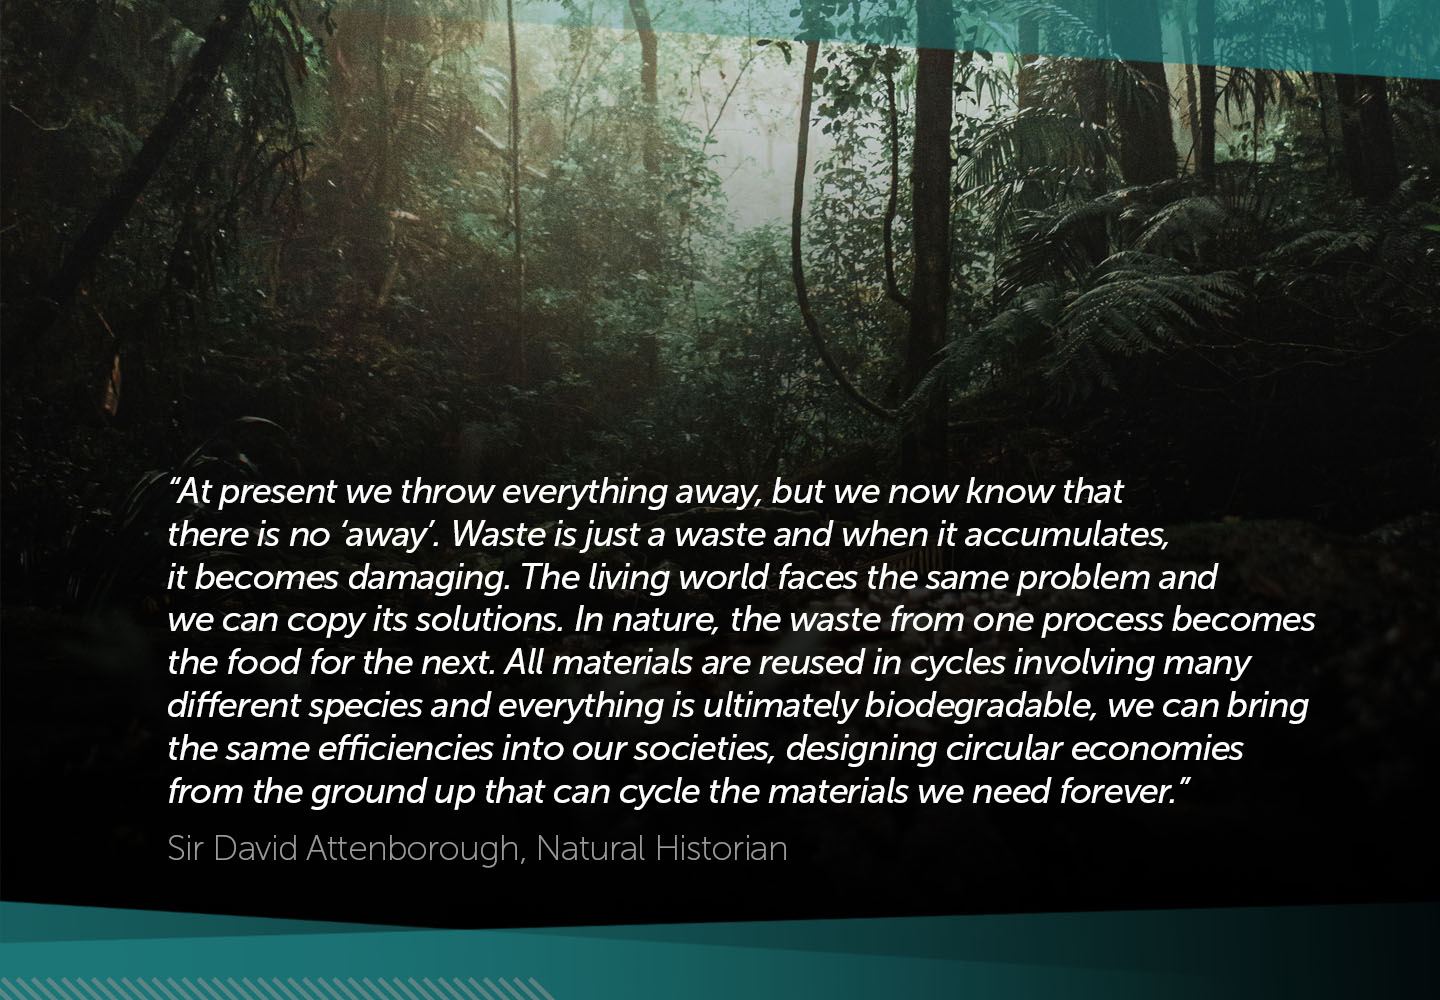 New waste to value report quote